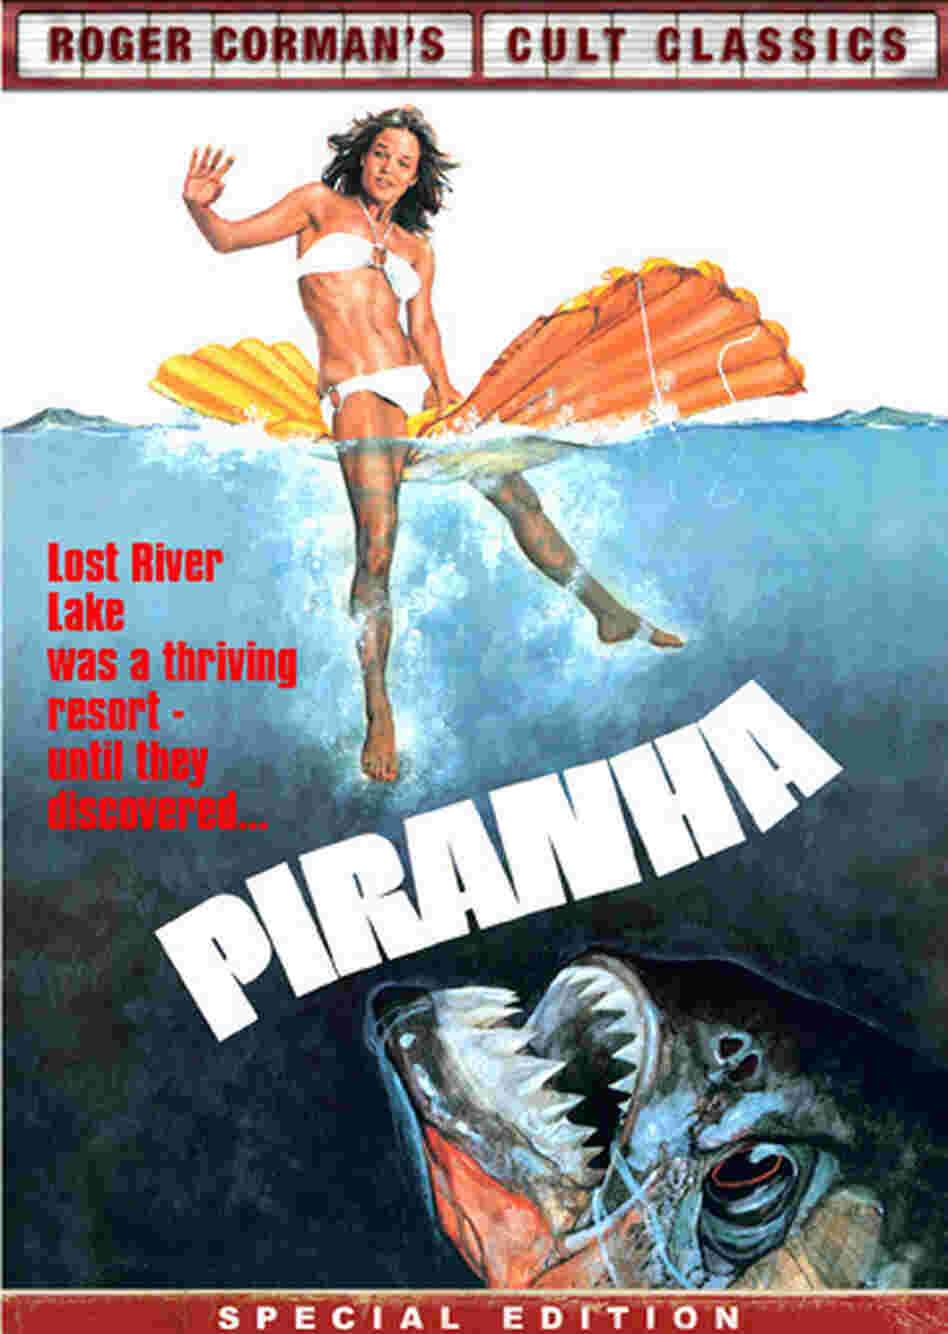 Jaws inspired B-movie king Roger Corman's 1978 knockoff, Piranha.